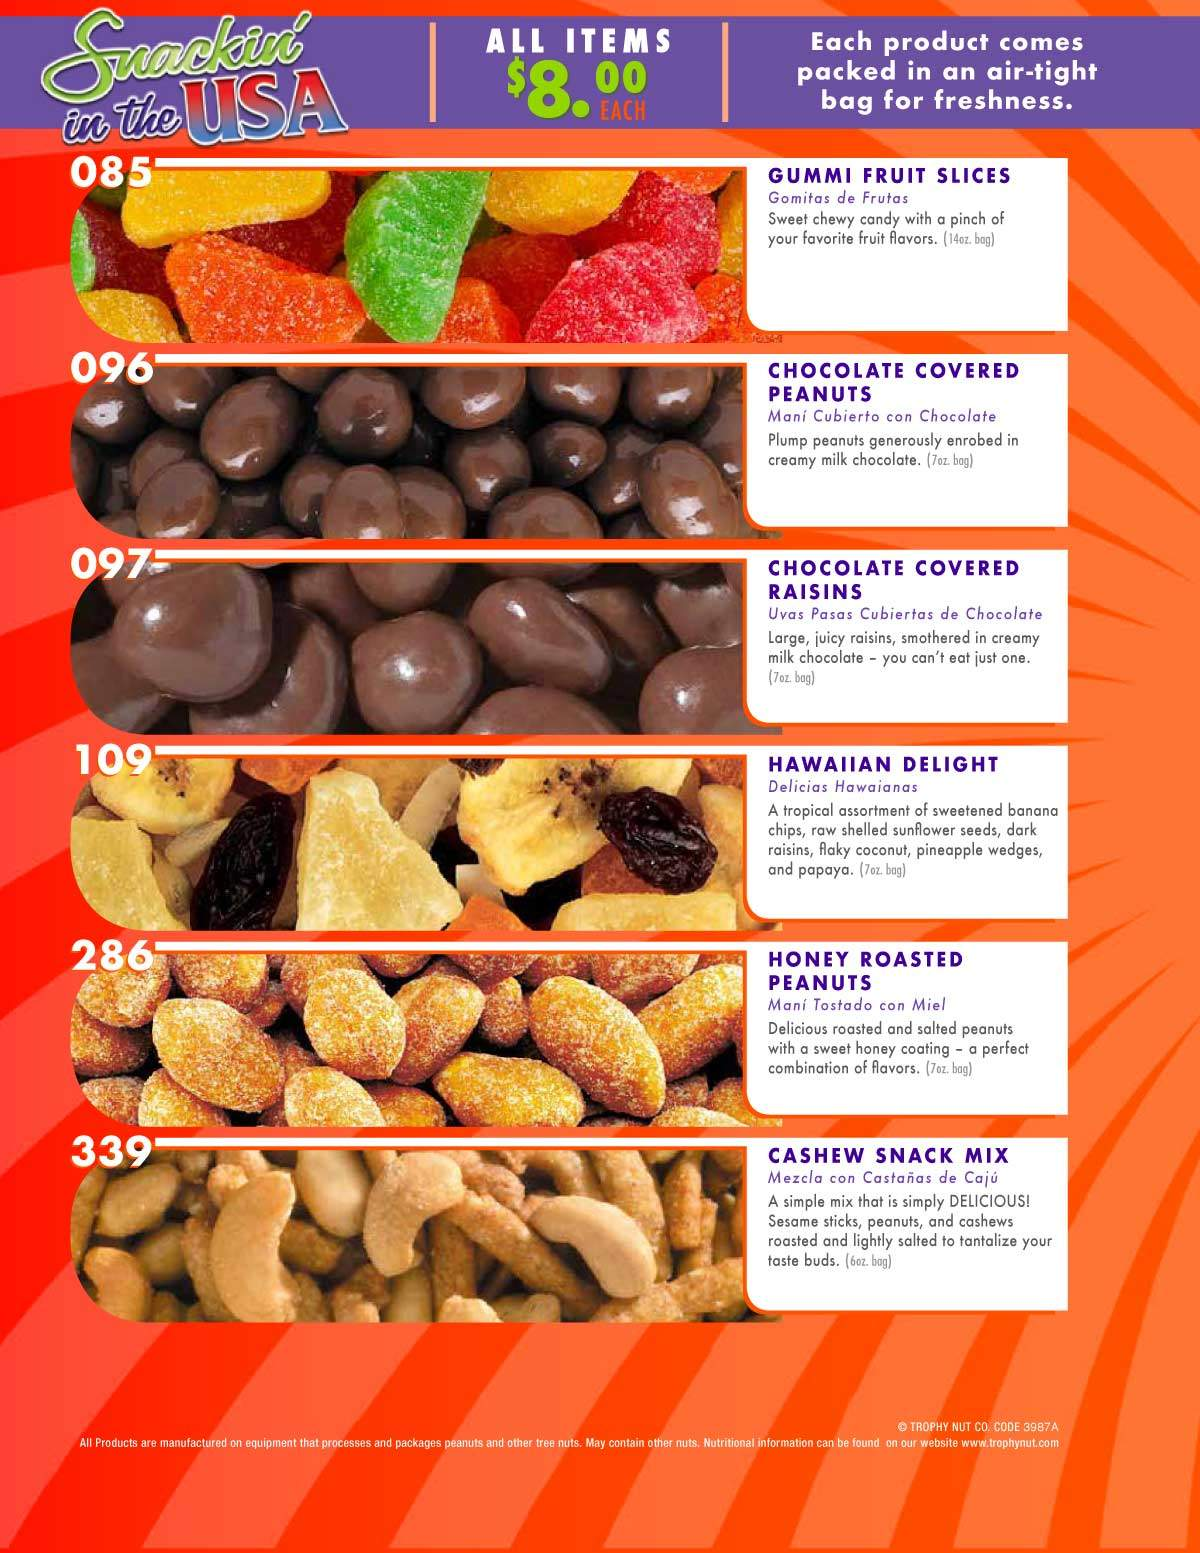 SNACKIN IN USA 2019 8 BROCHURE 4